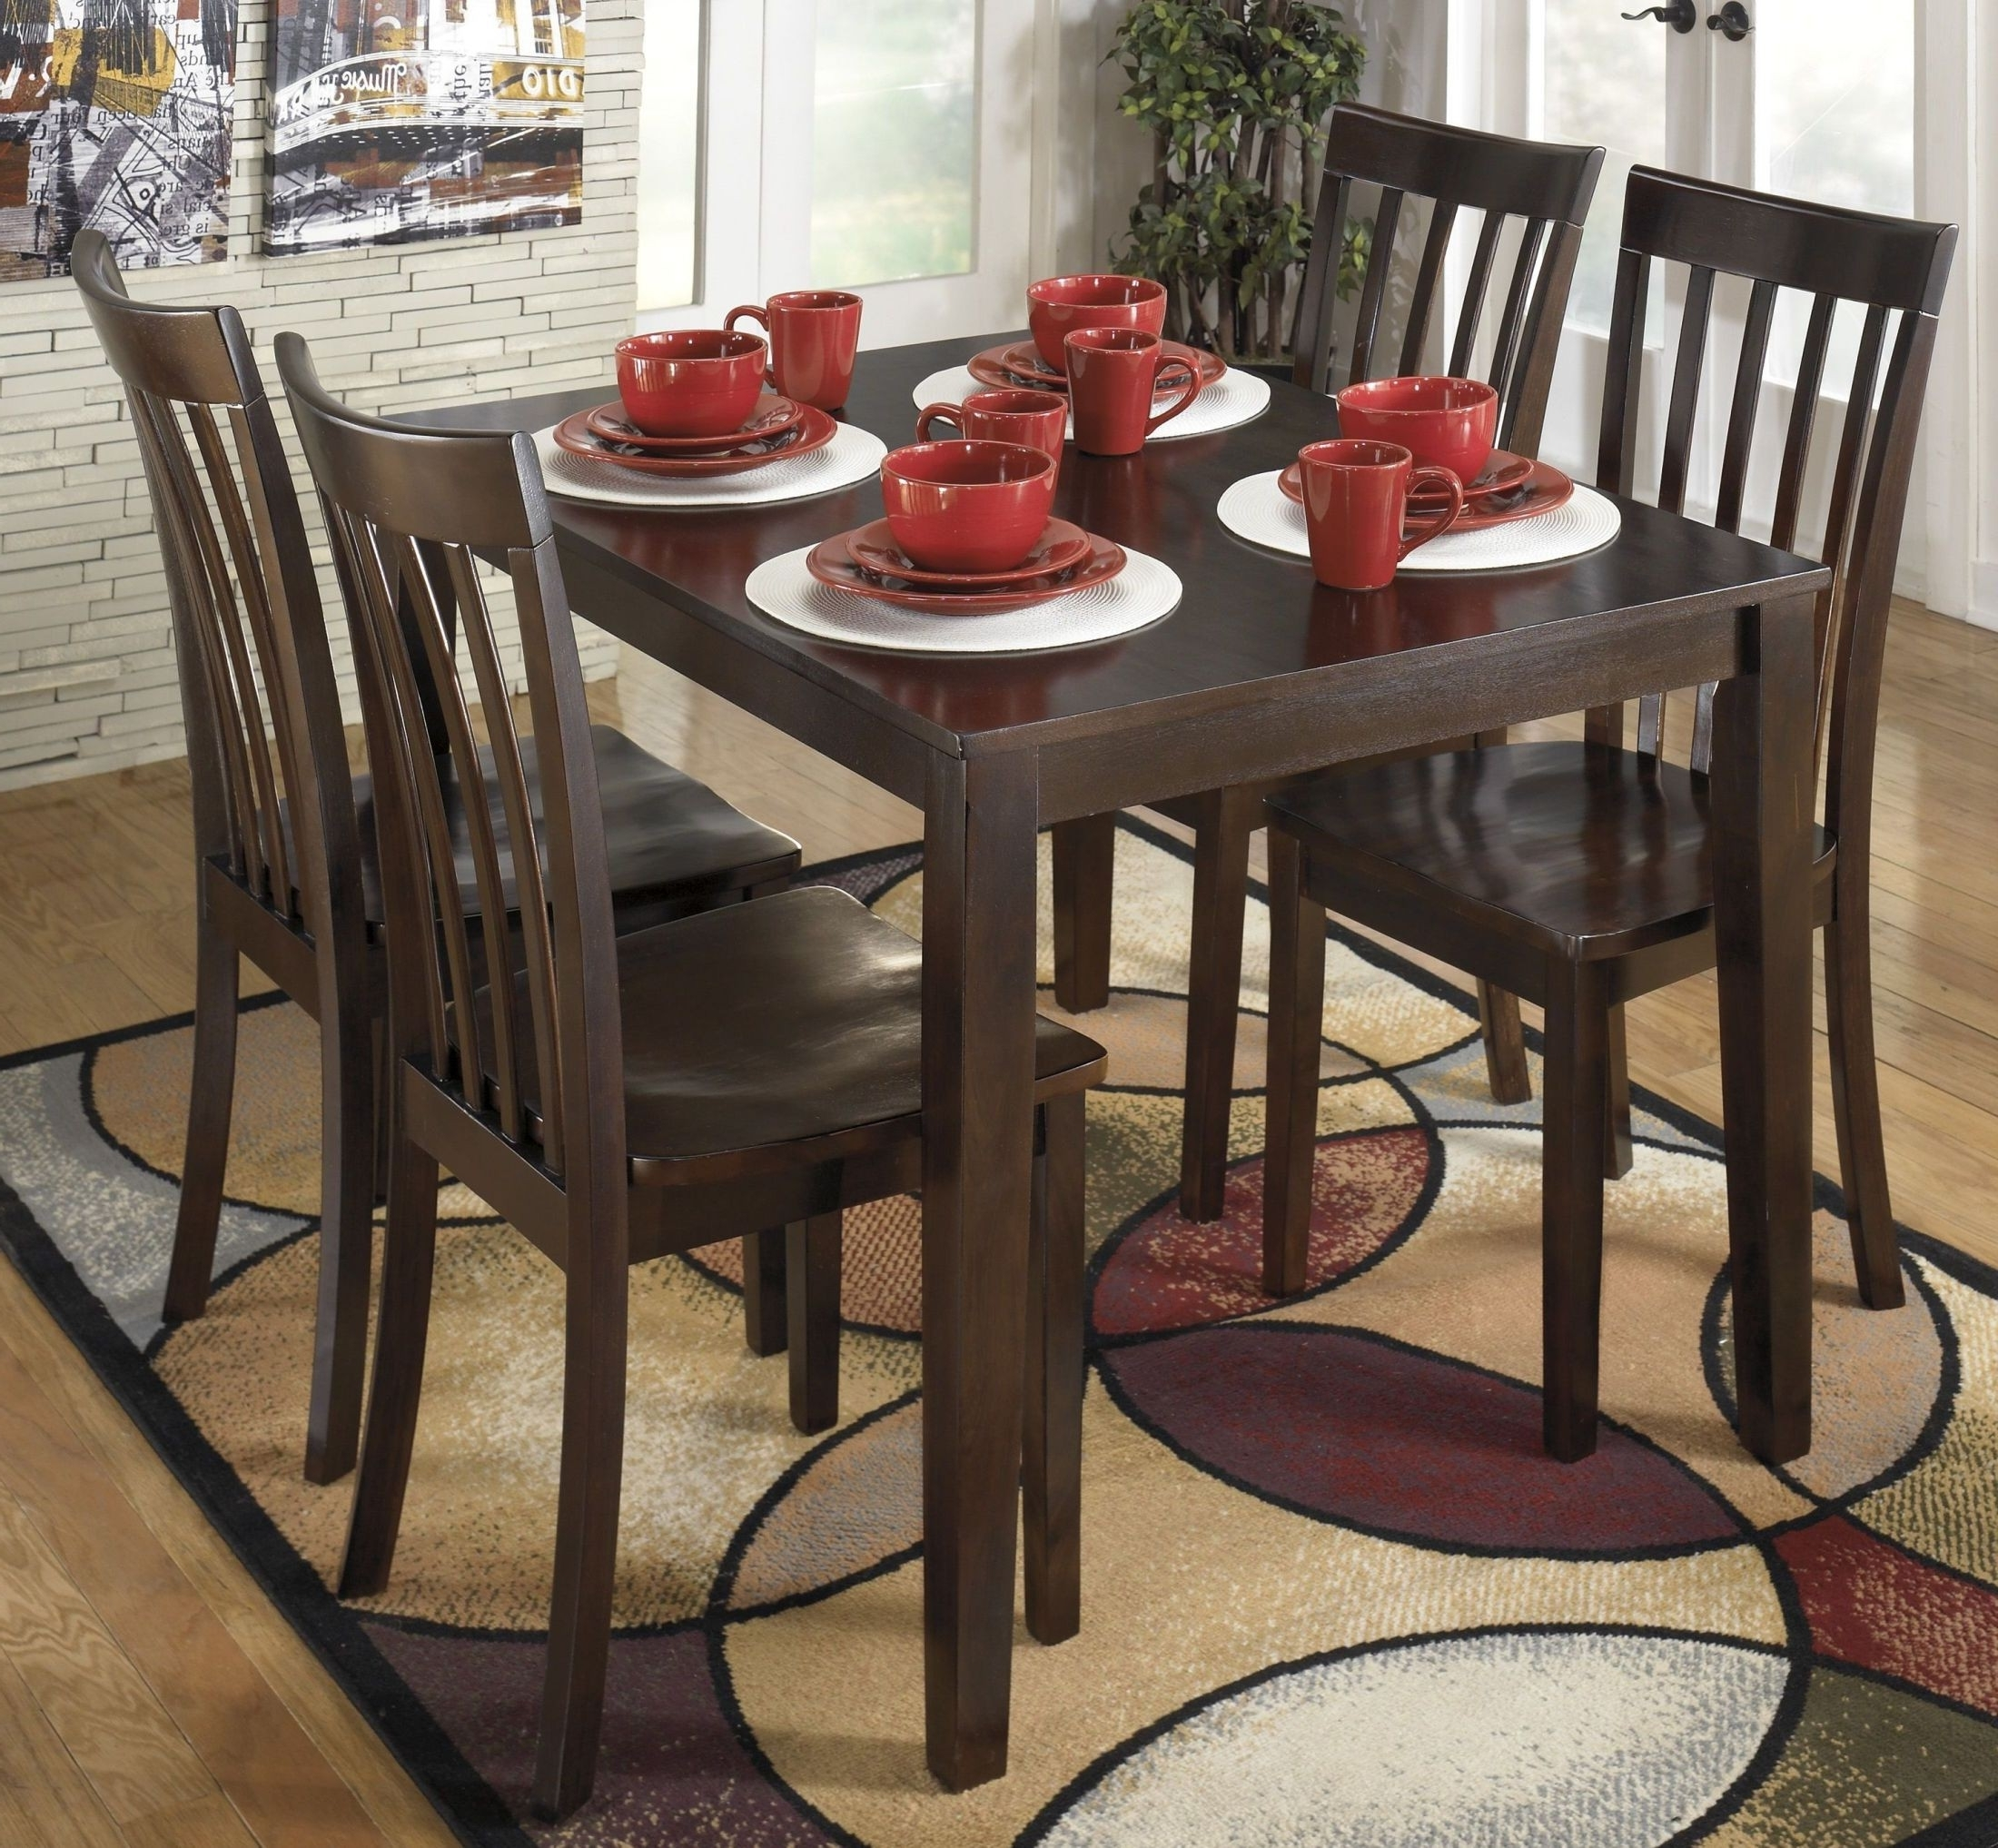 Recent Hyland 5 Piece Counter Sets With Bench Intended For Signature Designashley Hyland 5 Piece Casual Dining Set – Hyland (View 20 of 25)